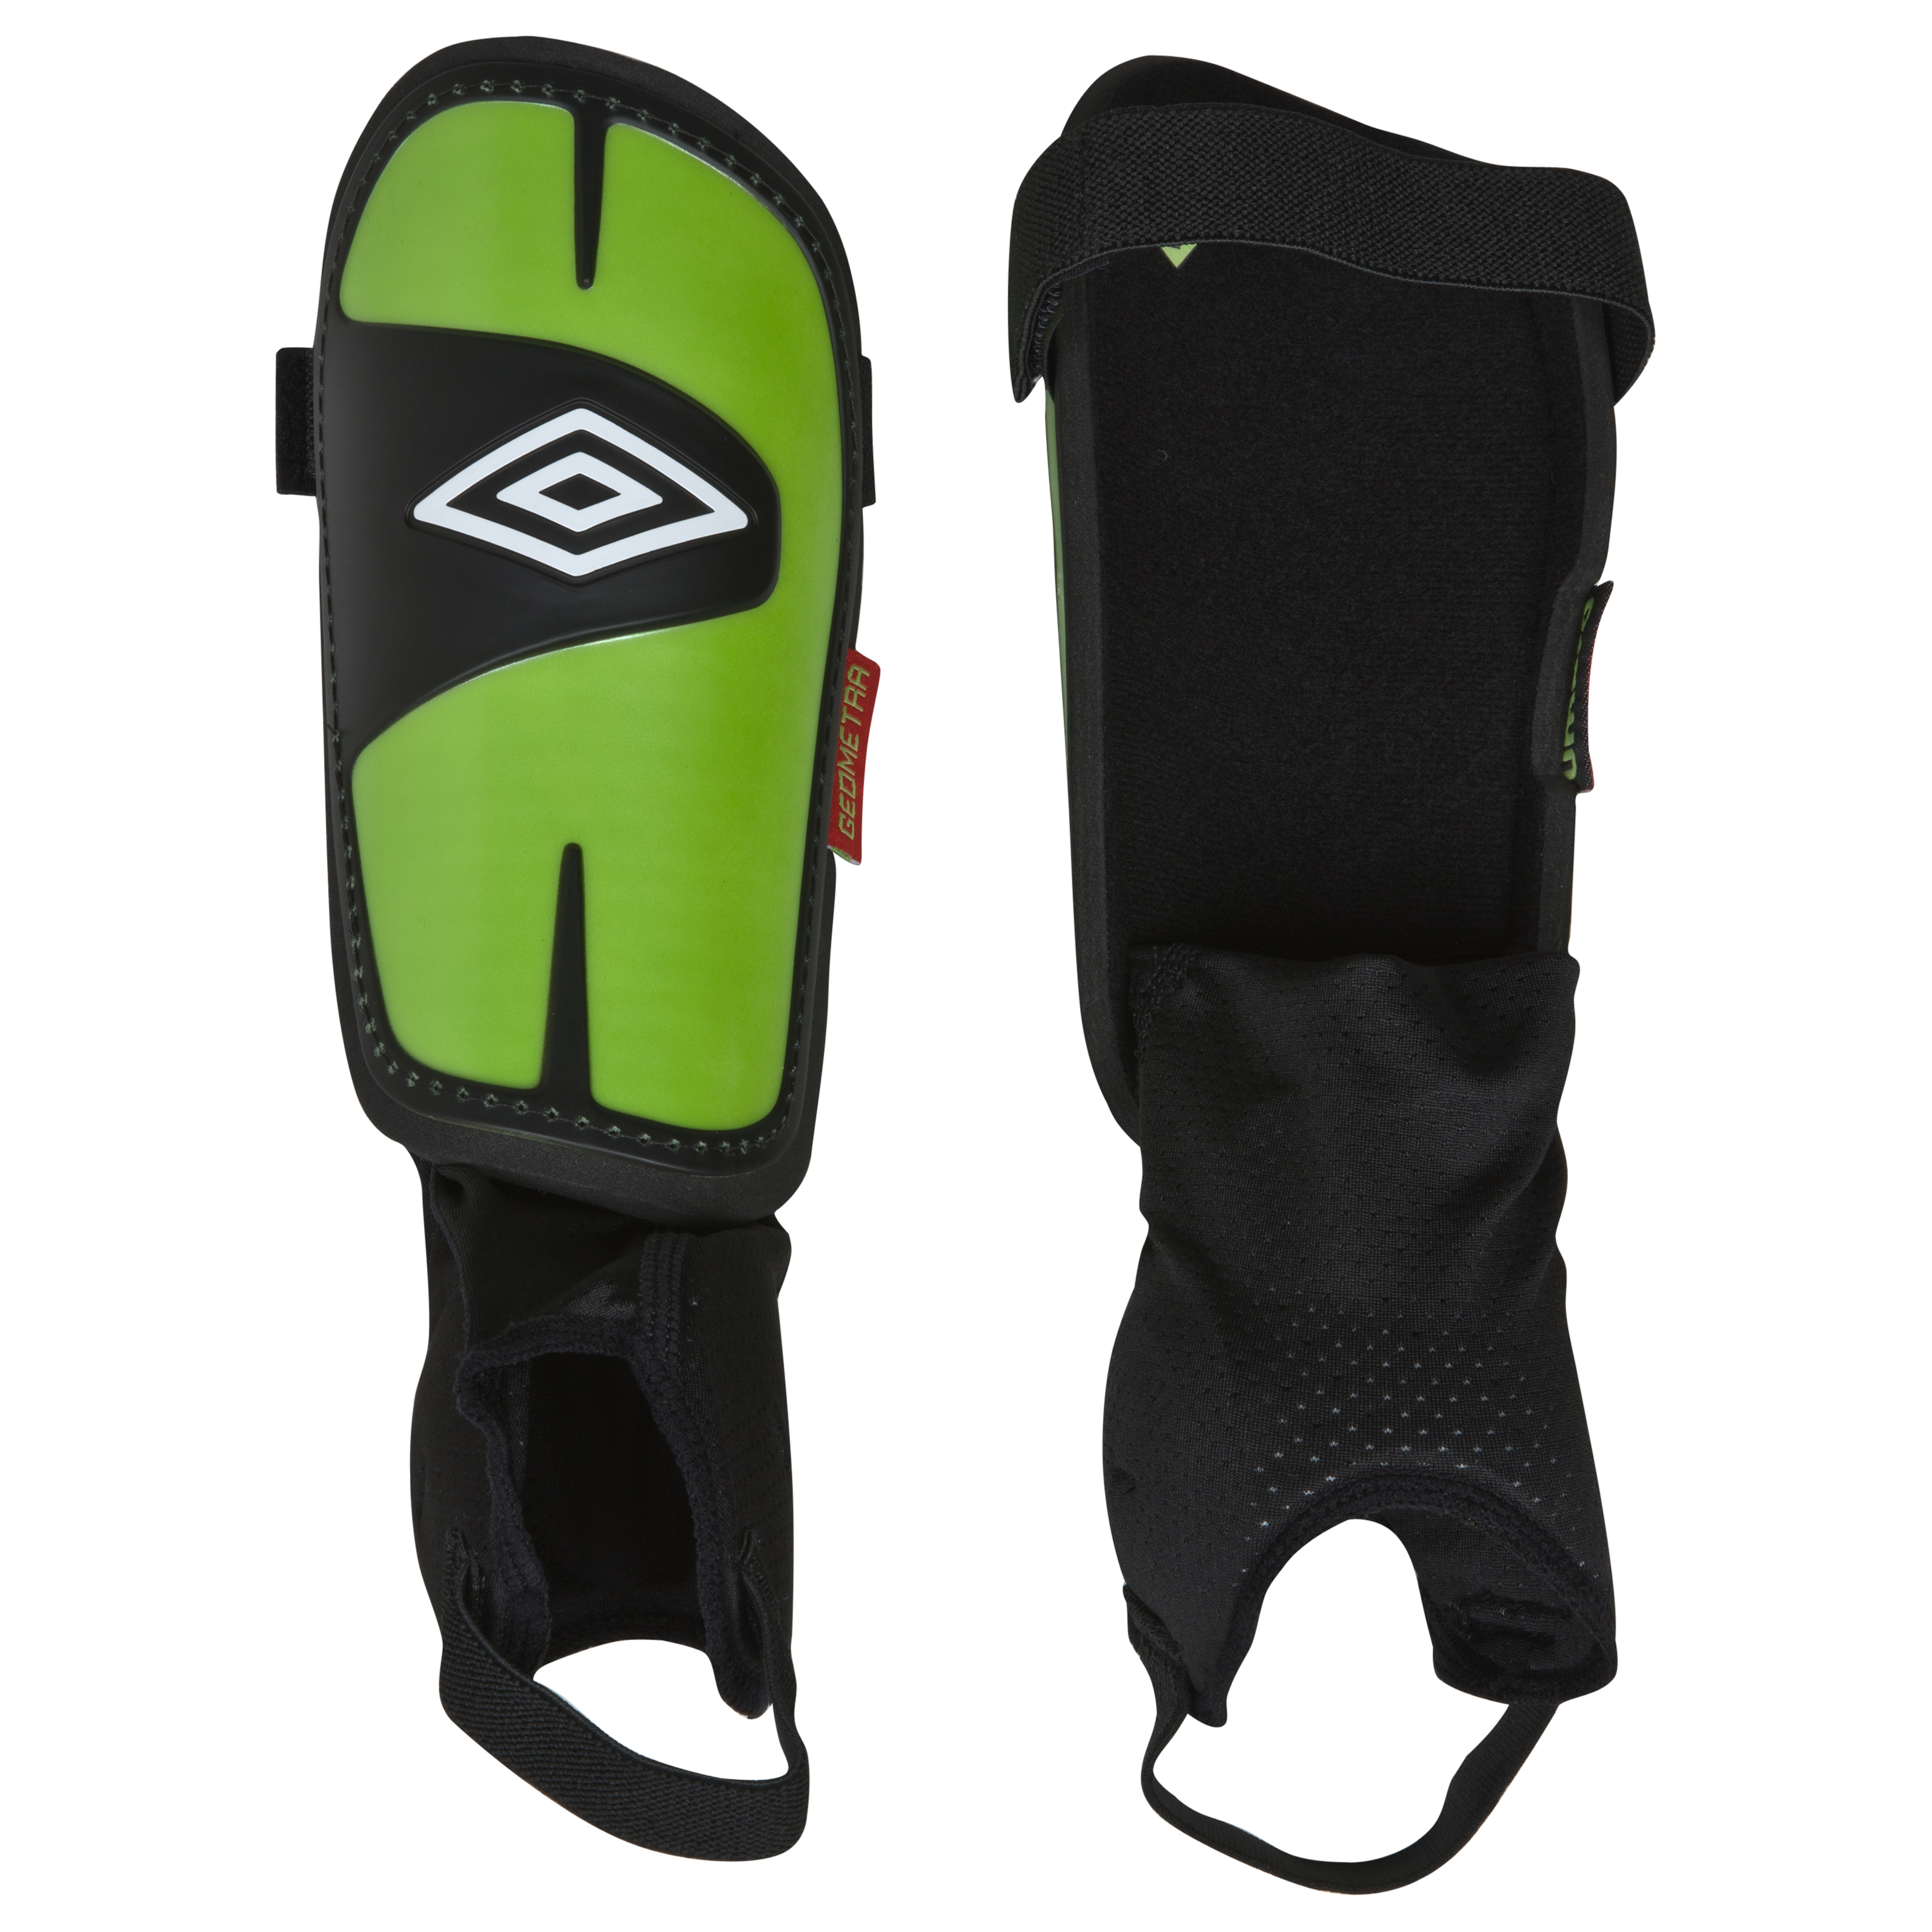 Umbro Geometra Cup Shin Pads - Black/White/Sharp Green/True Red